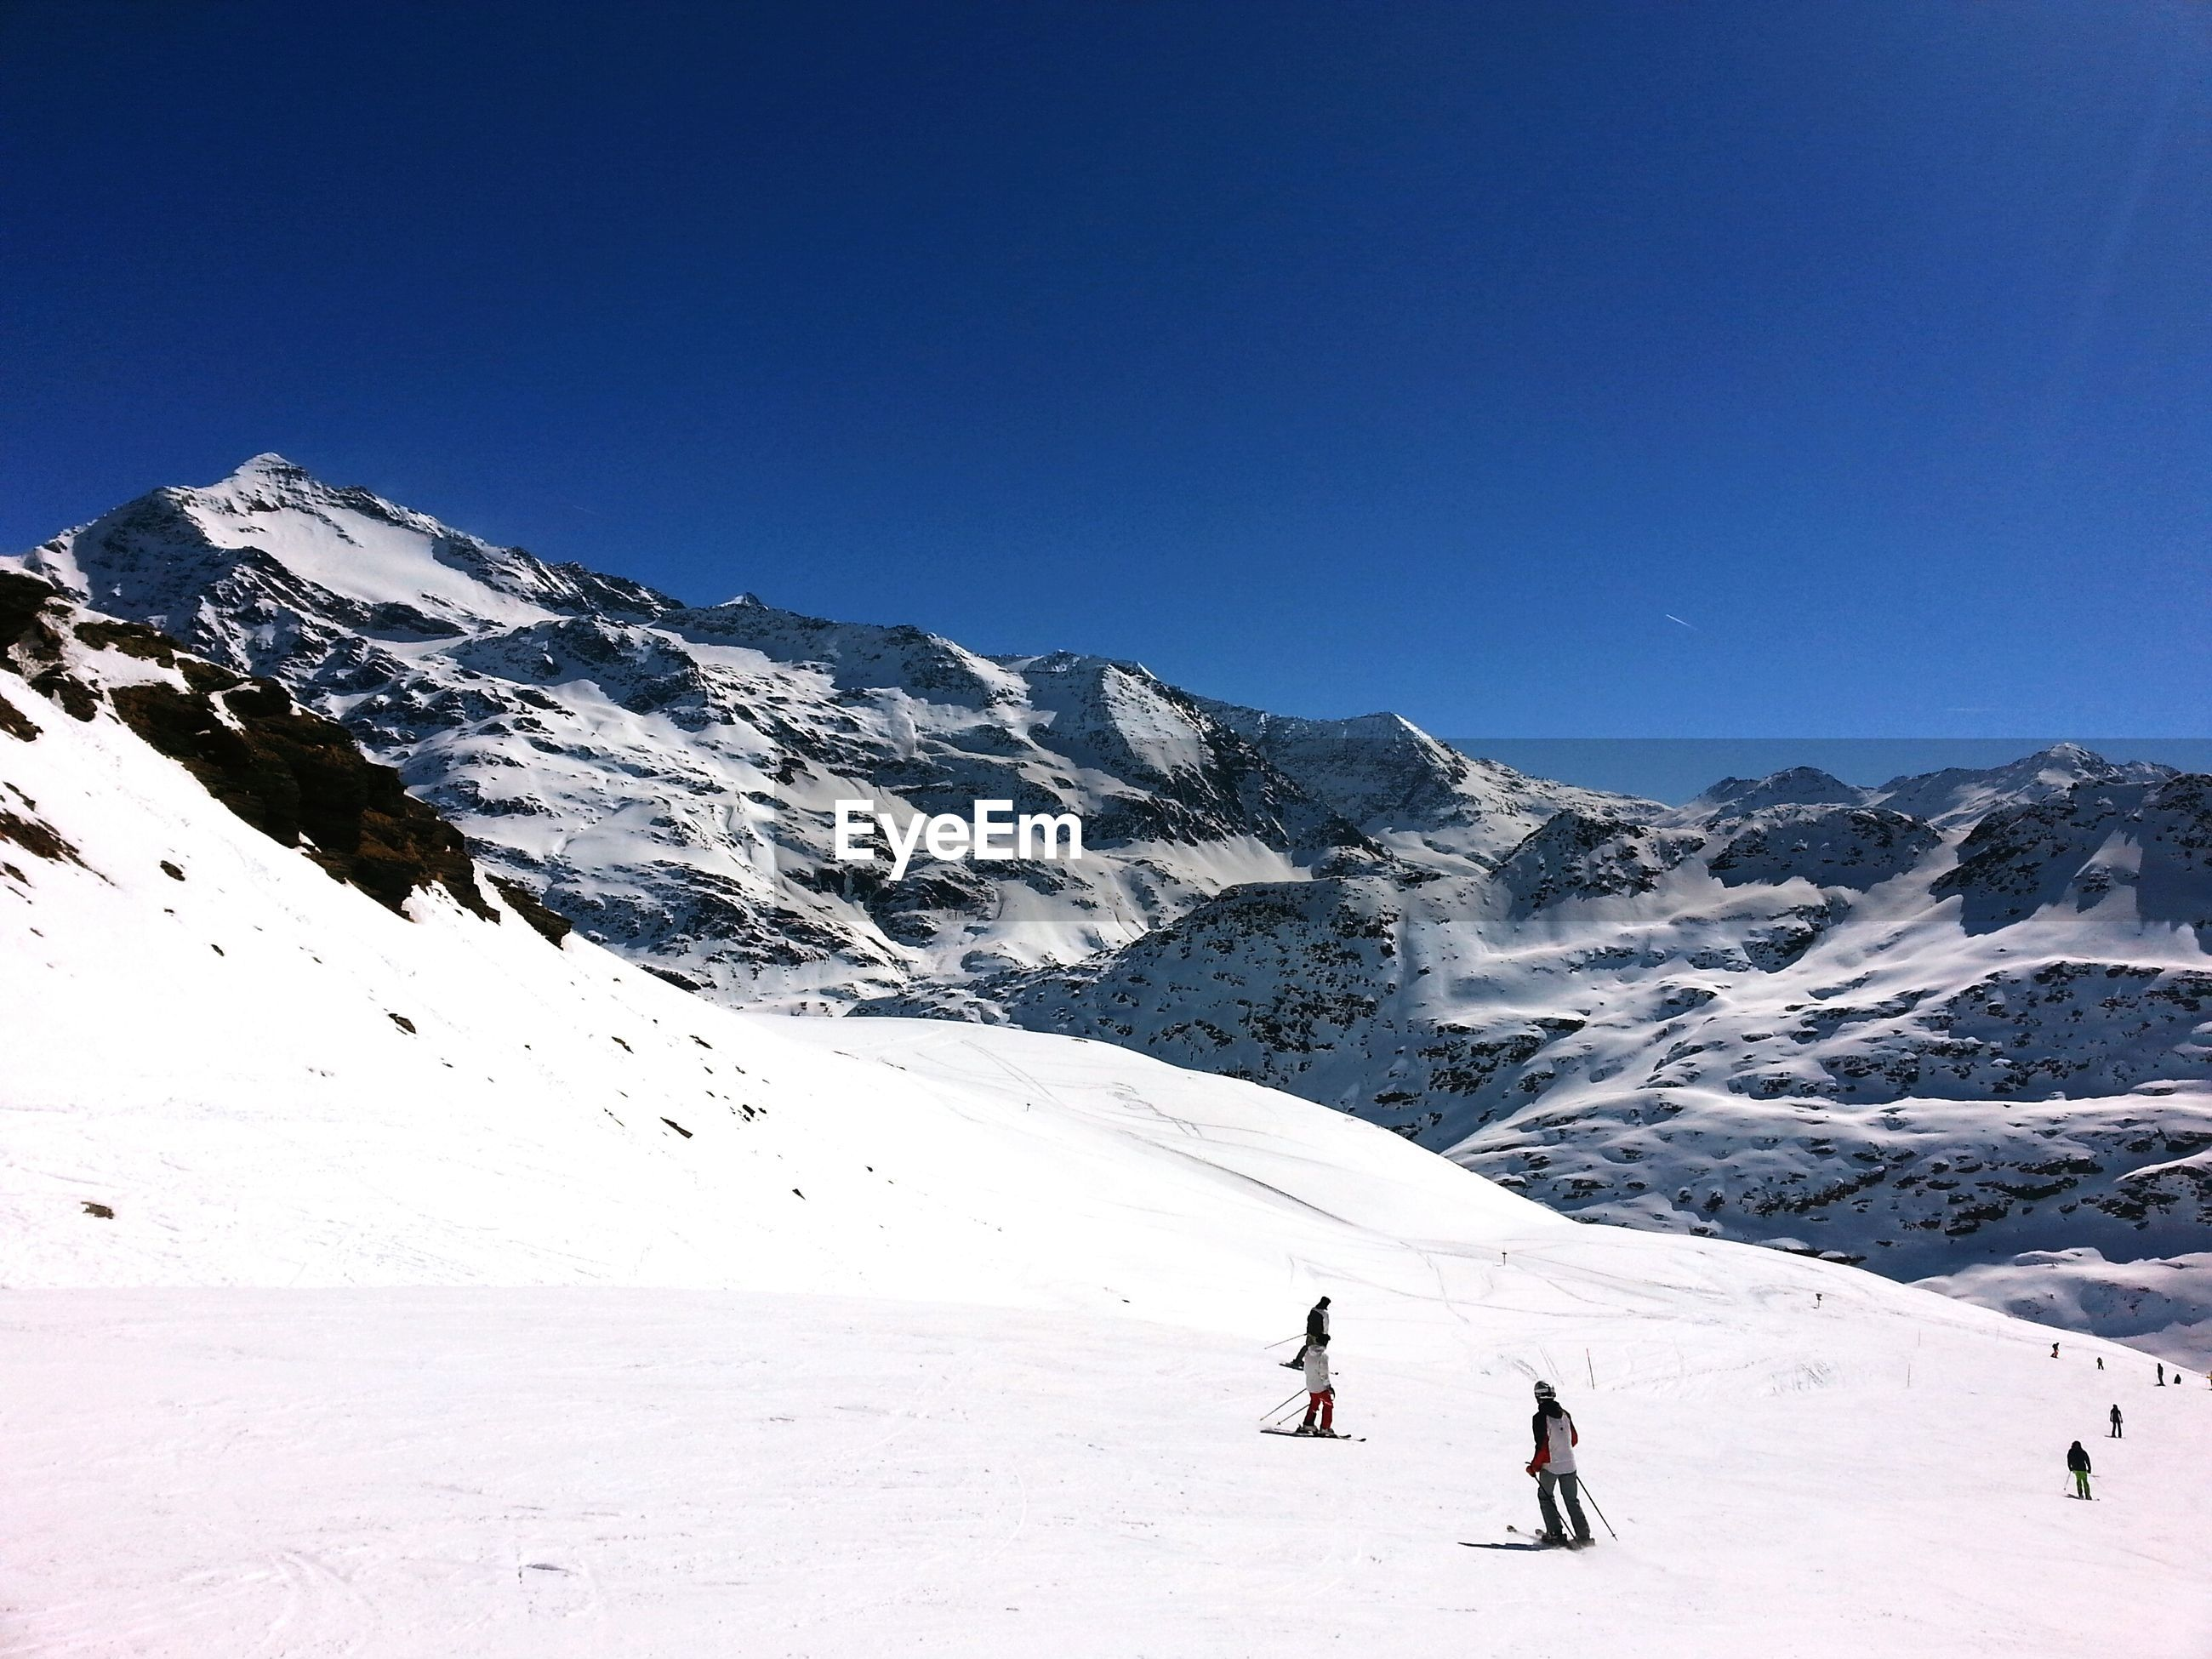 People skiing on snow covered landscape against clear sky